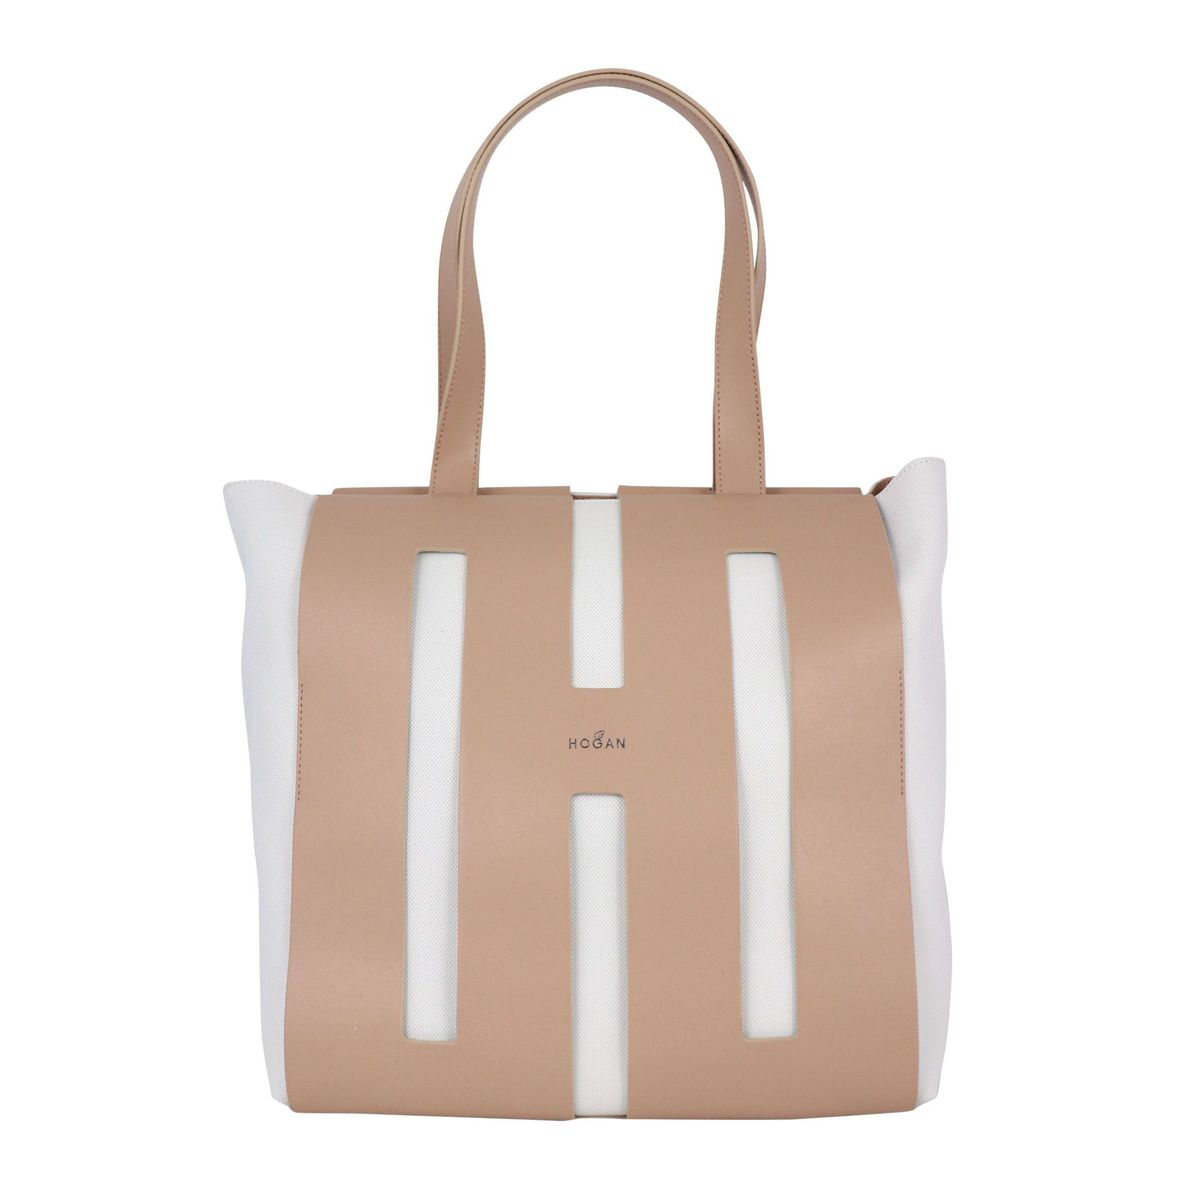 Shopping bag in leather and canvas White / beige Hogan